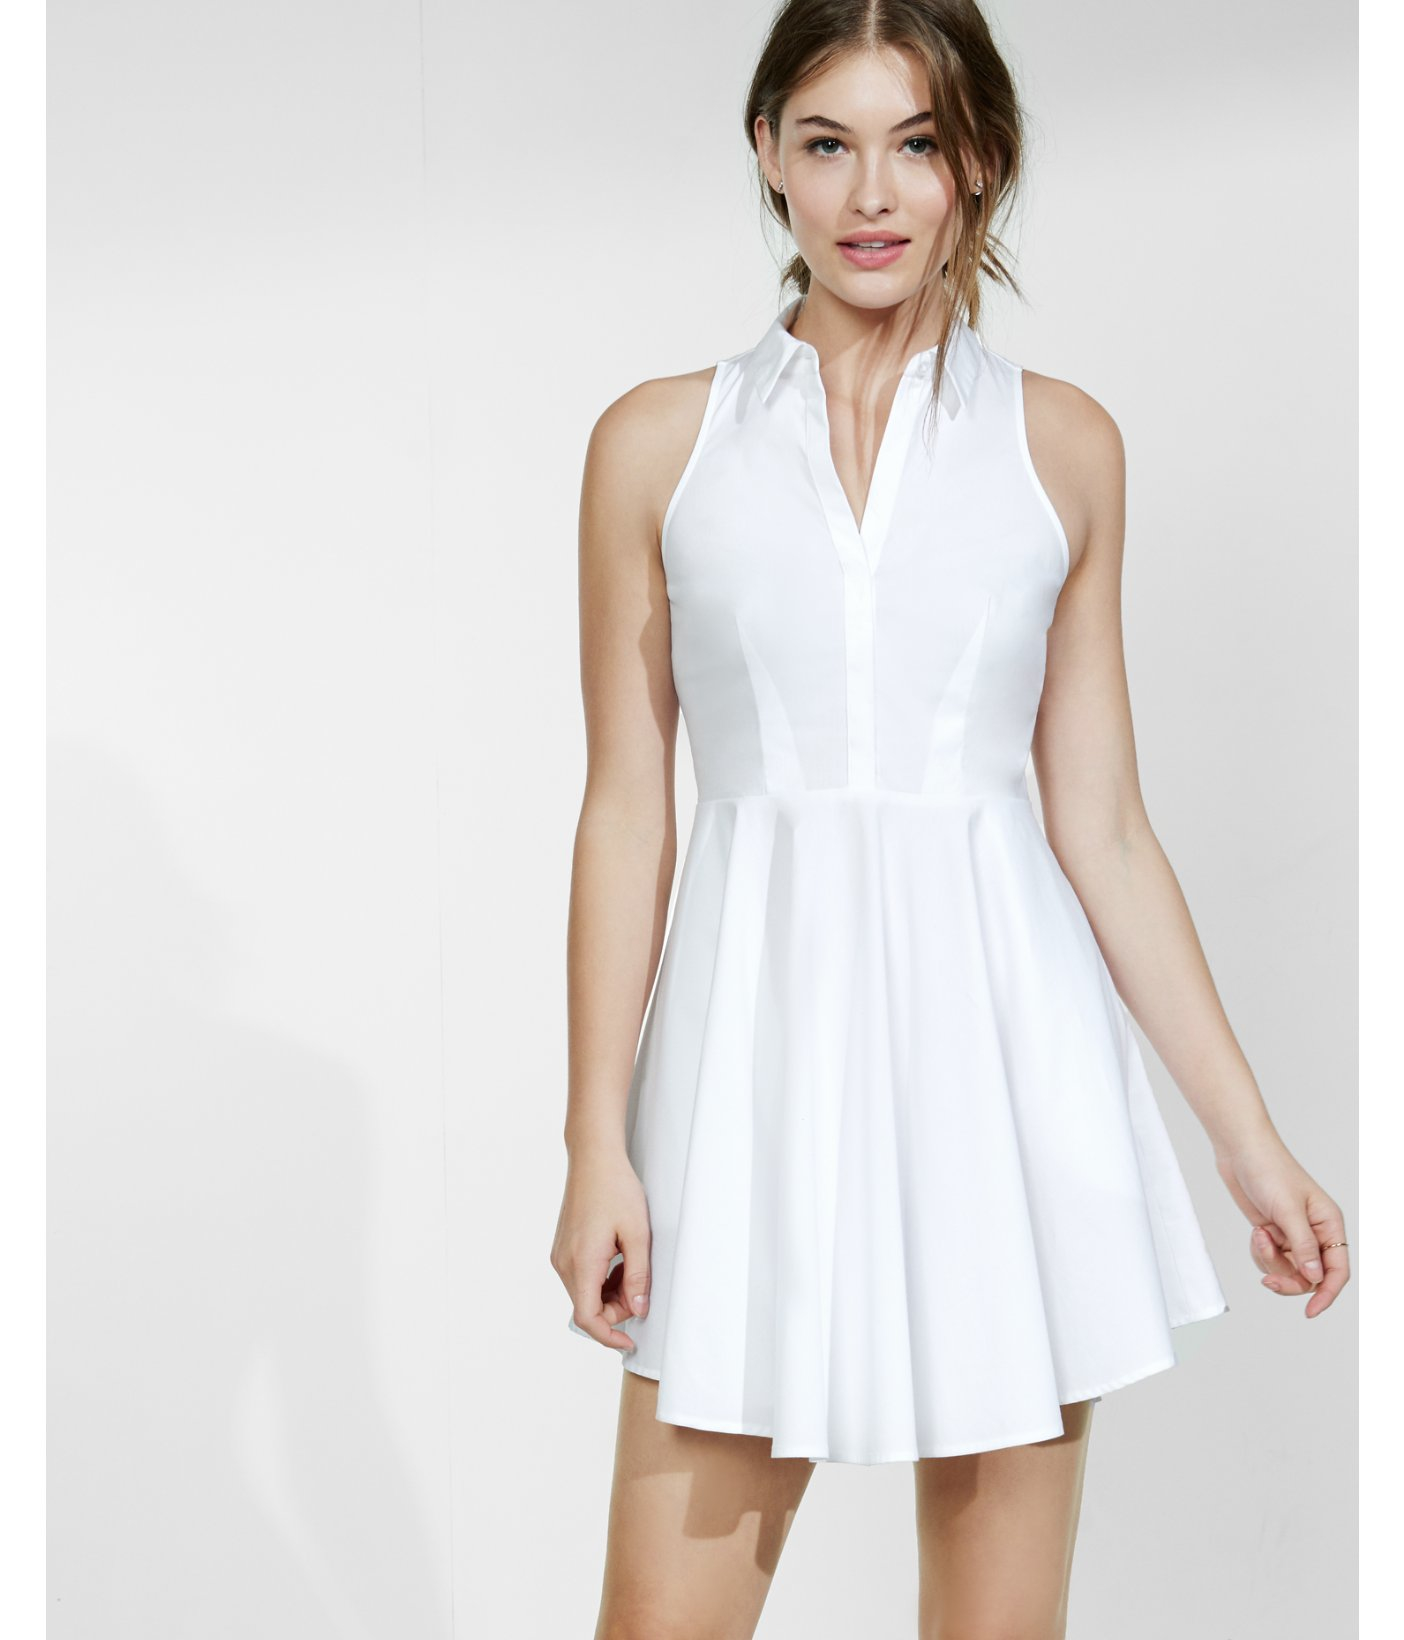 Express white sleeveless fit and flare shirt dress in for Fitted white dress shirt womens